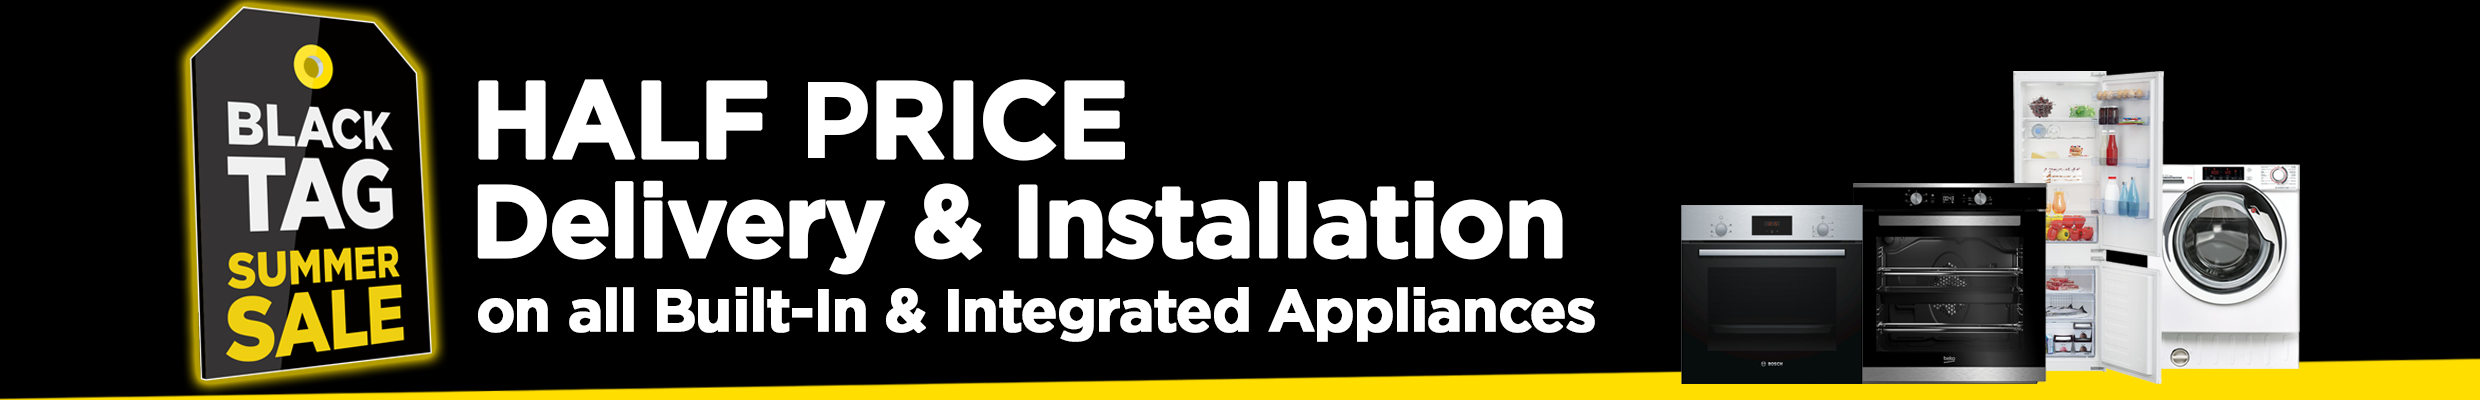 Half Price Delivery and Installation